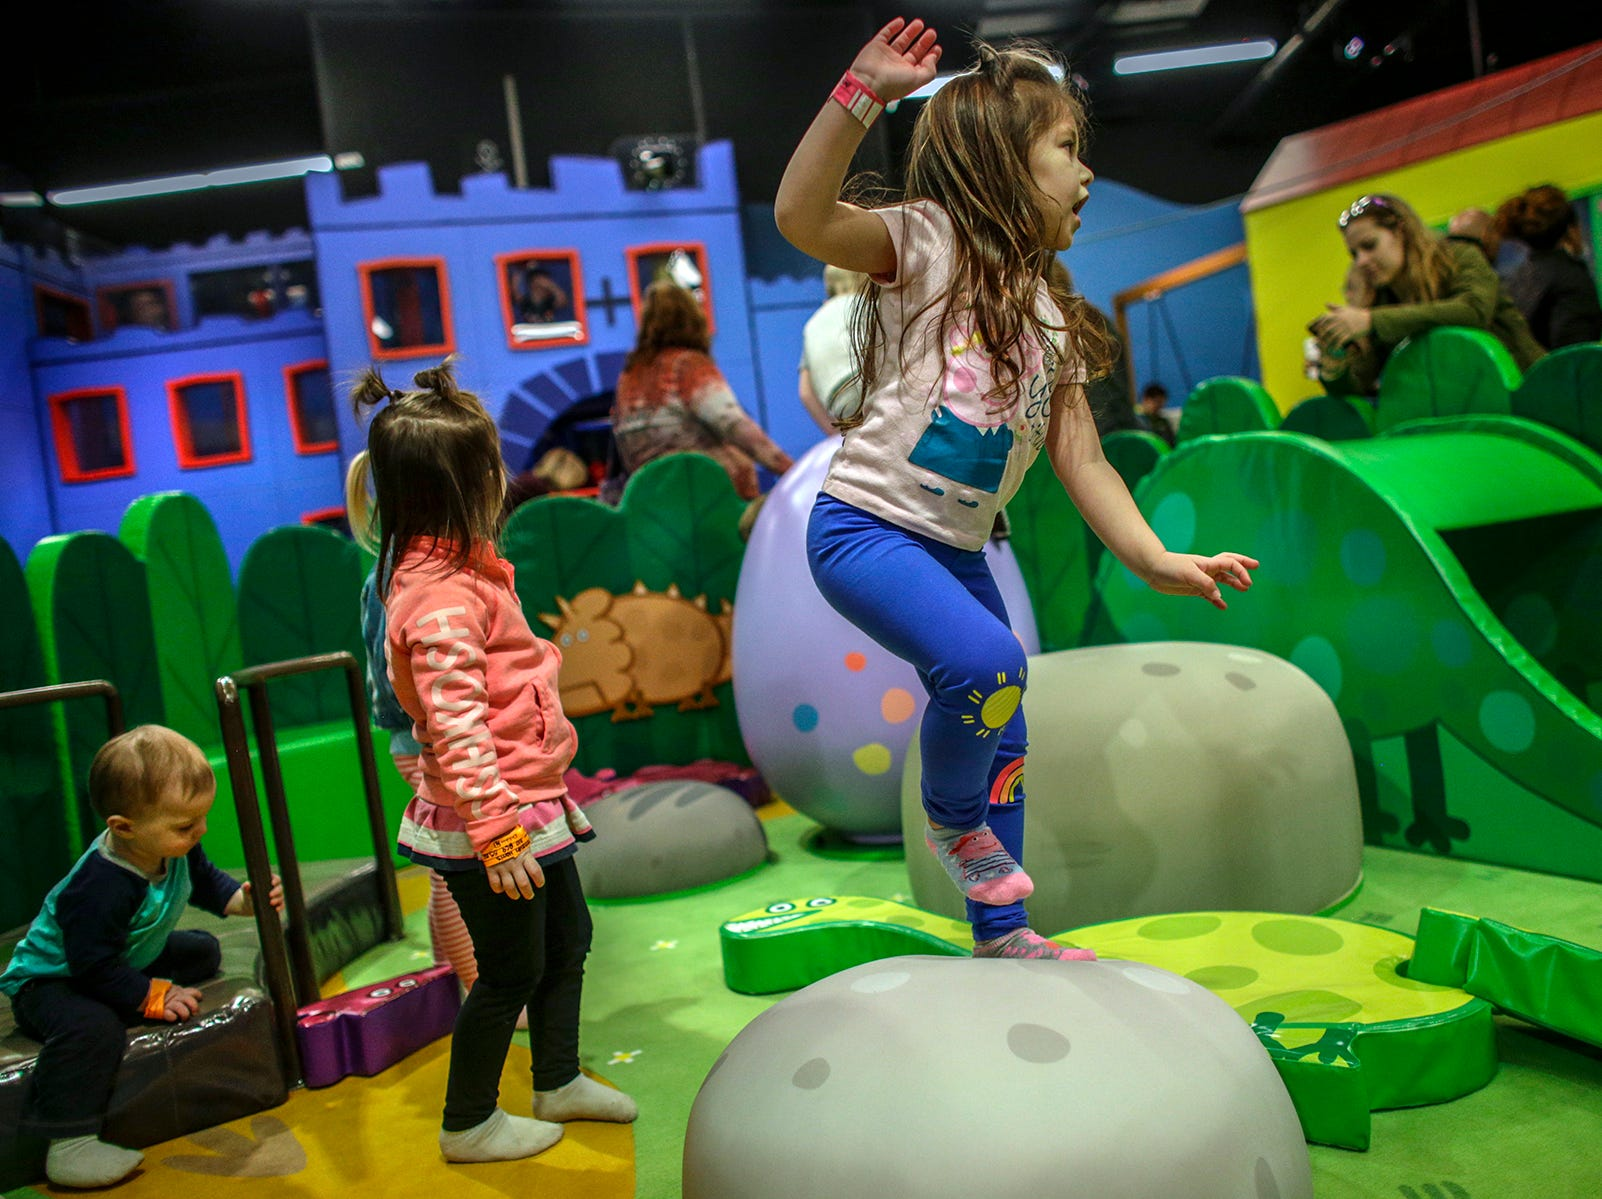 Ayla Aquino, 4, of Bruce Twp, Mich. stands on a rock pillow in George's Dinosaur Discovery play area at Peppa Pig World of Play attraction at Great Lakes Crossing in Auburn Hills, Mich. photographed on Friday, March 29, 2019.